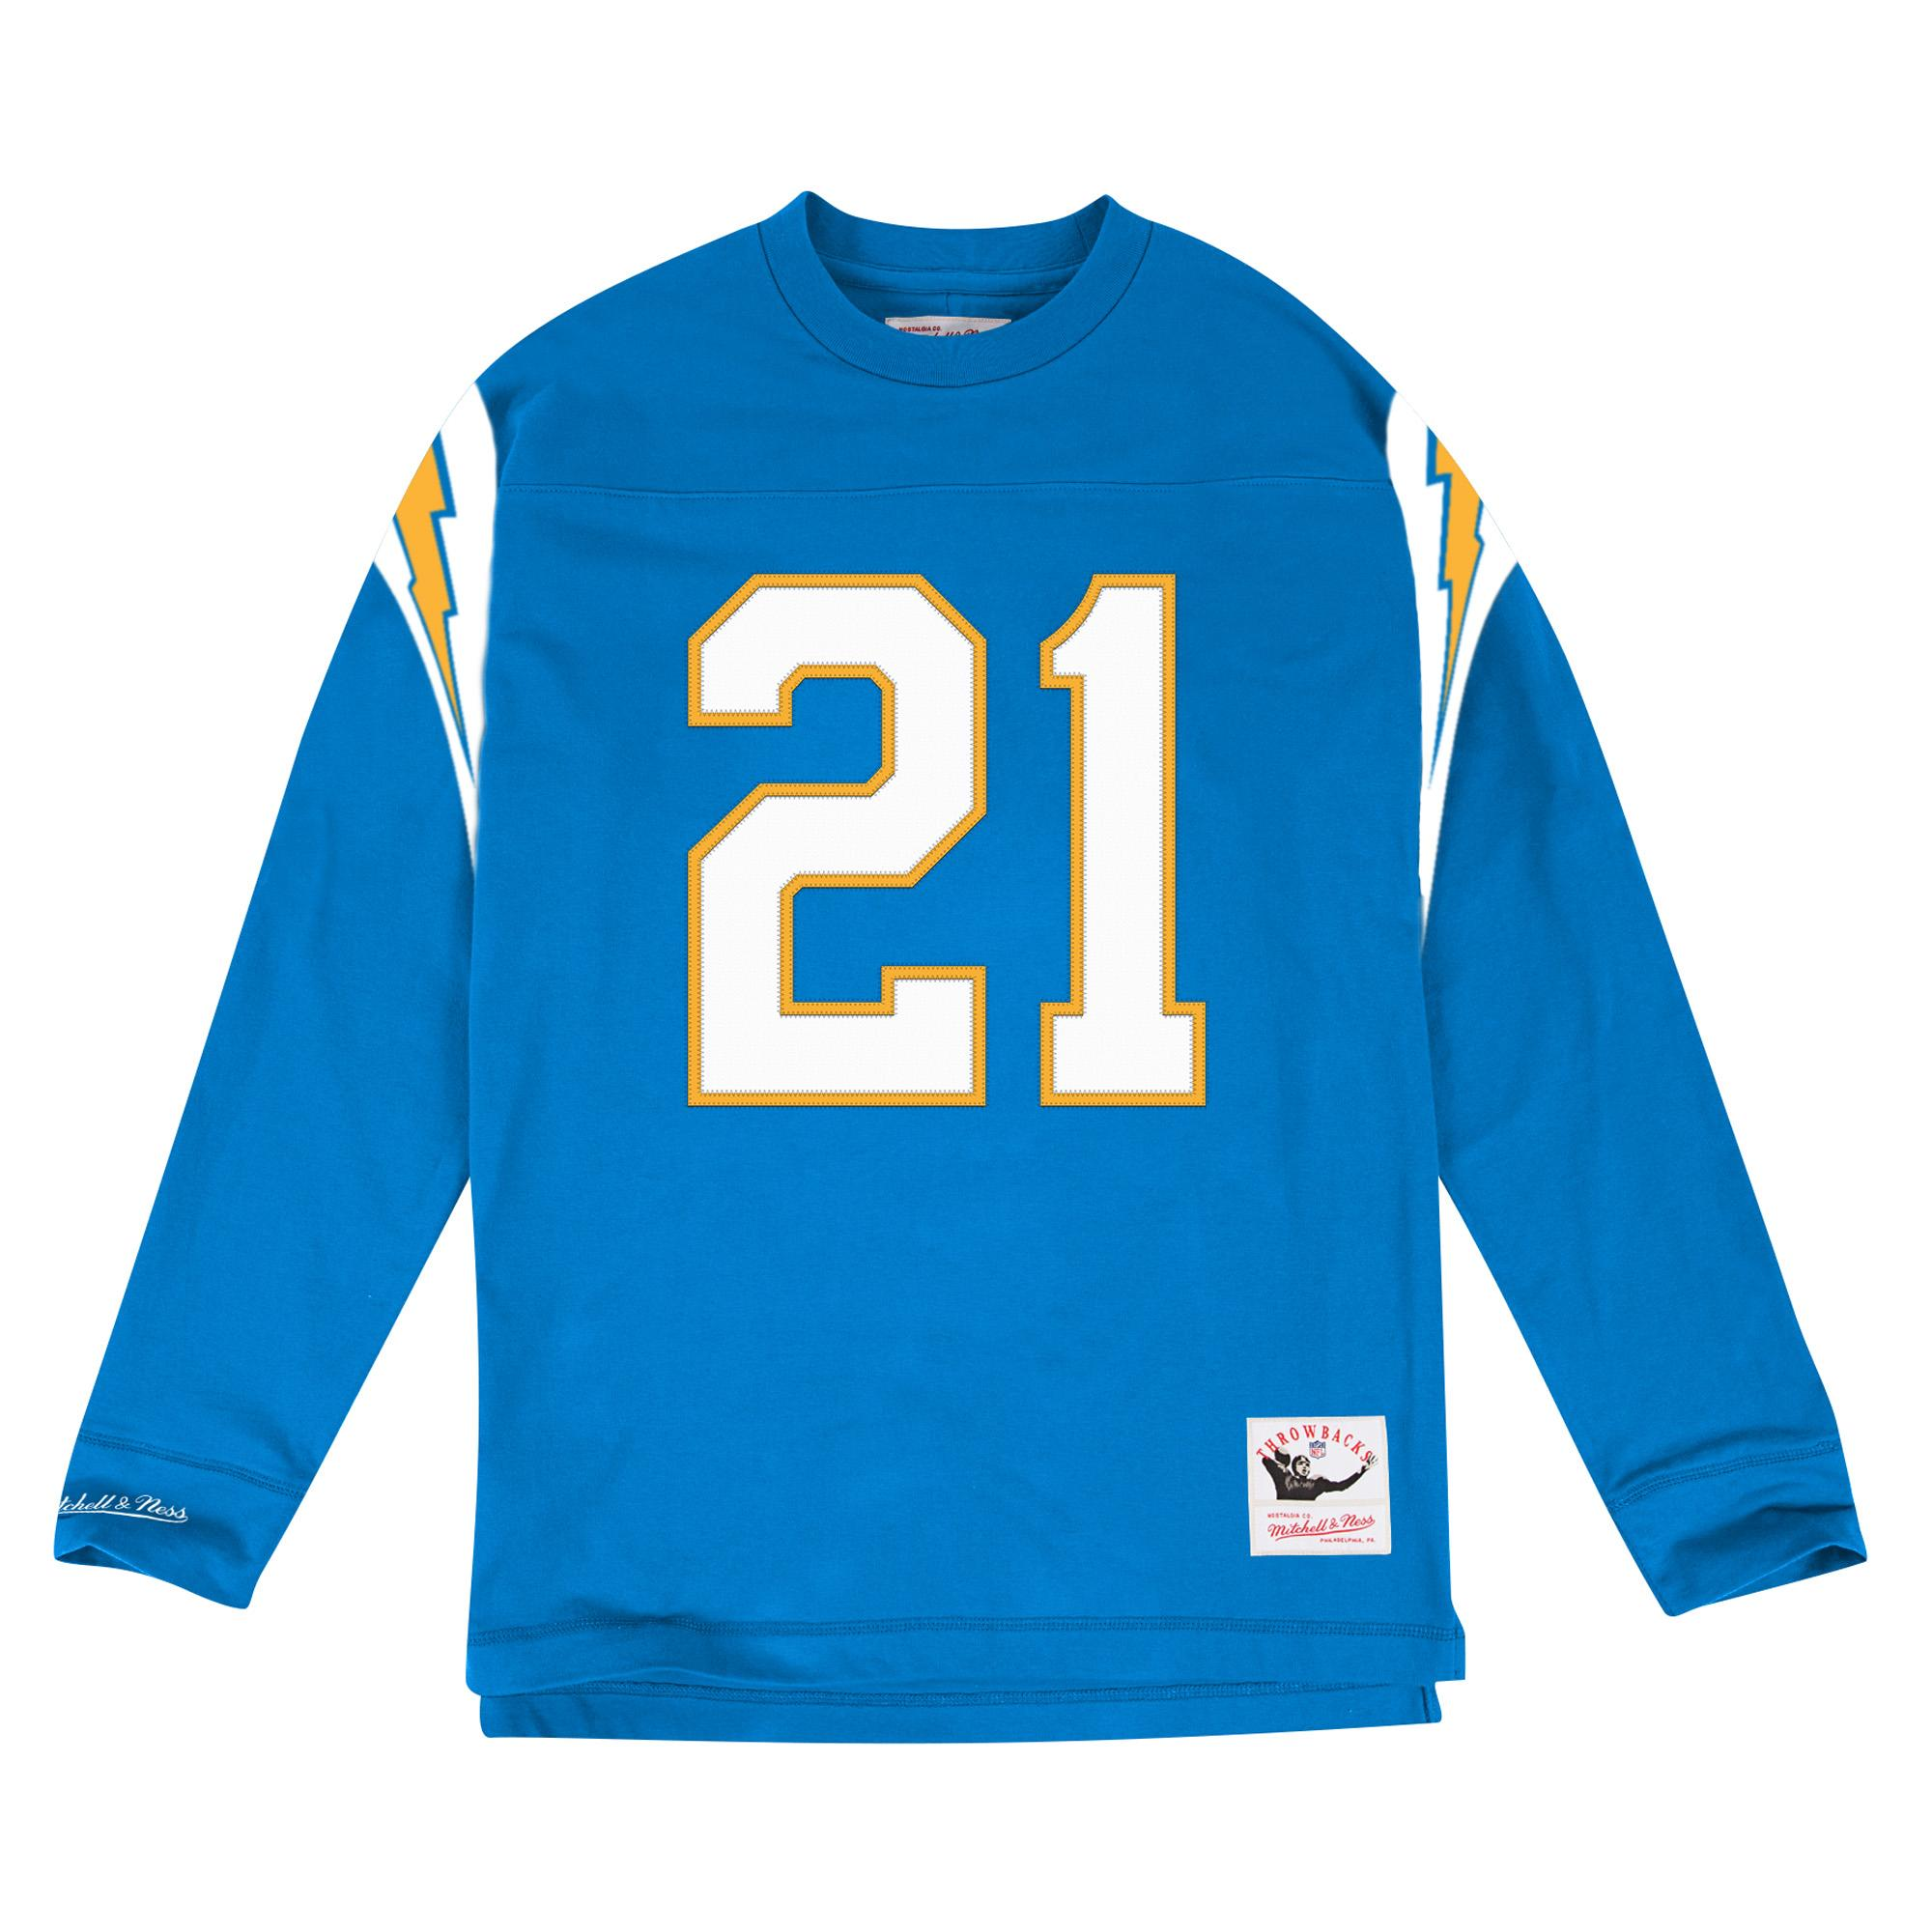 sale retailer 8d6a5 c8336 Mitchell & Ness | Name & Number Long Sleeve San Diego ...